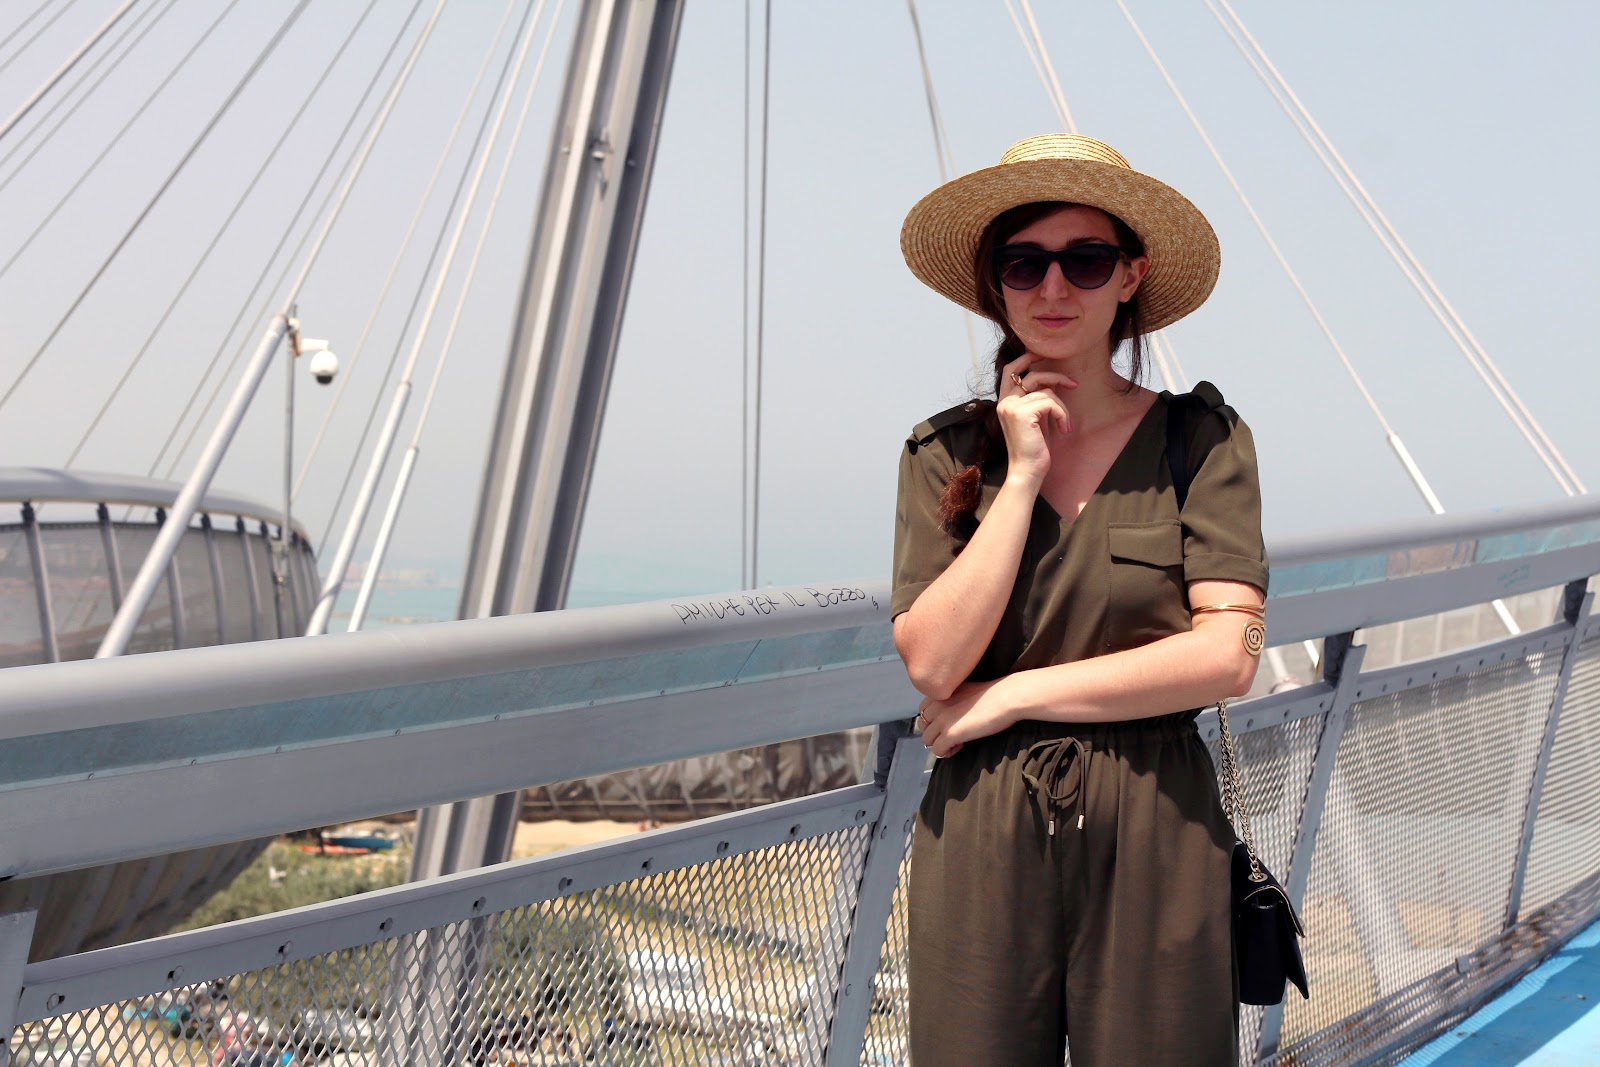 ashion style blogger outfit ootd italian girl italy trend vogue glamour pescara ponte del mare ovs ovspeople jumpsuit military green straw hat cappello paglia hm estate tutina ballerine stringate lacci lace up ballet shoes flats zara bag borsa tracolla ring middle finger